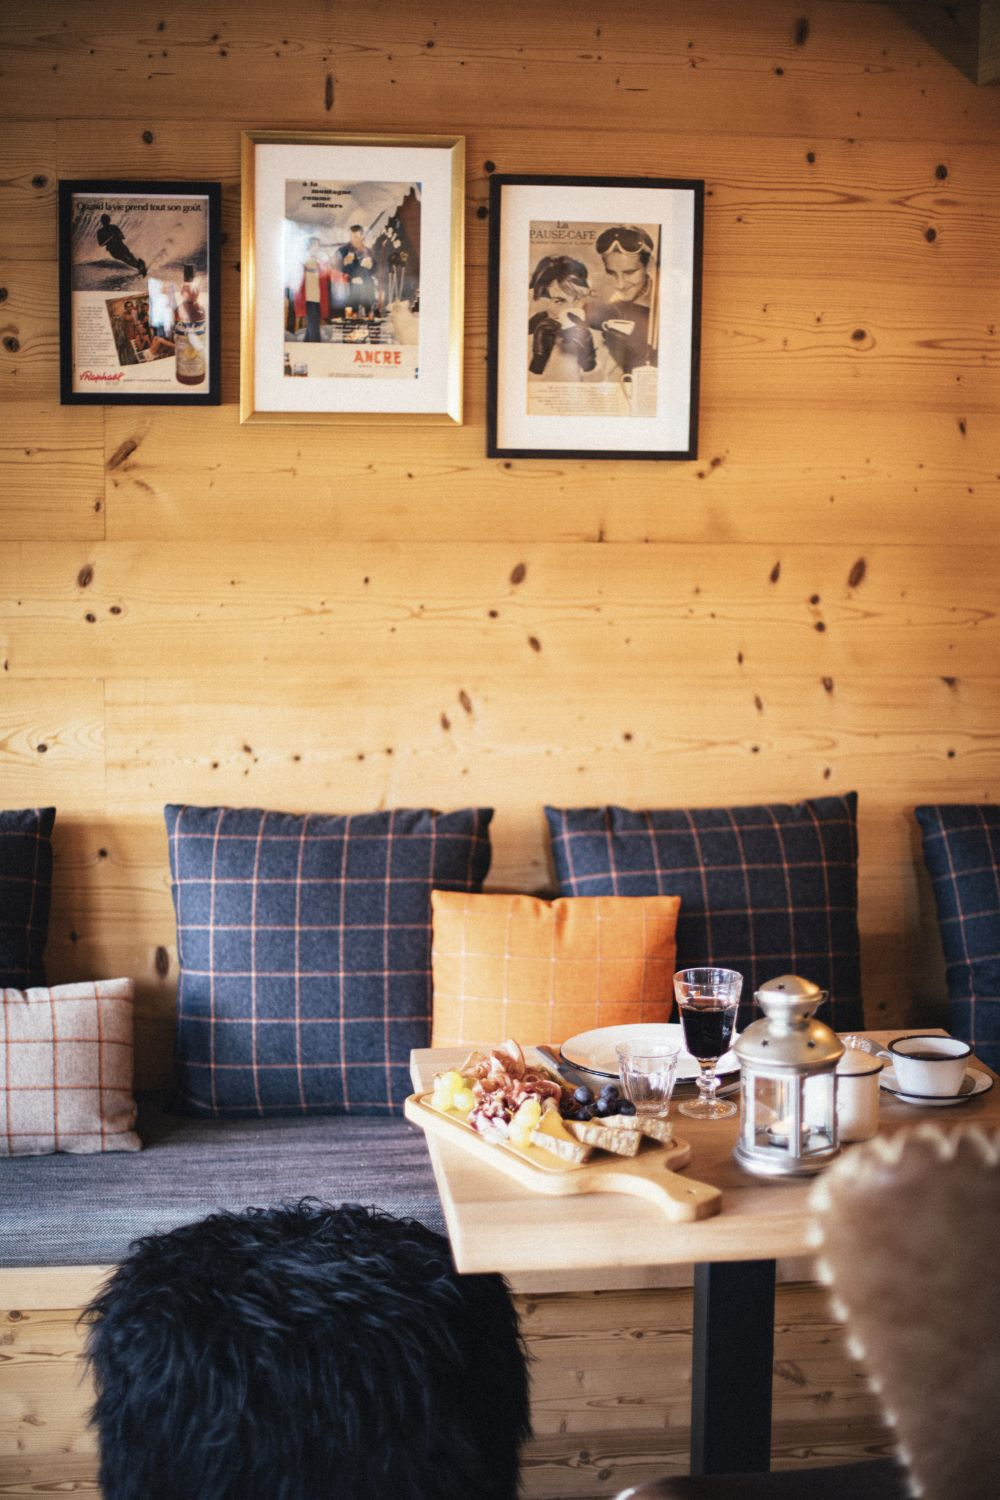 The restaurants feature comfortable wood benches with cozy cushions and pillows and walls decorated with framed pictures